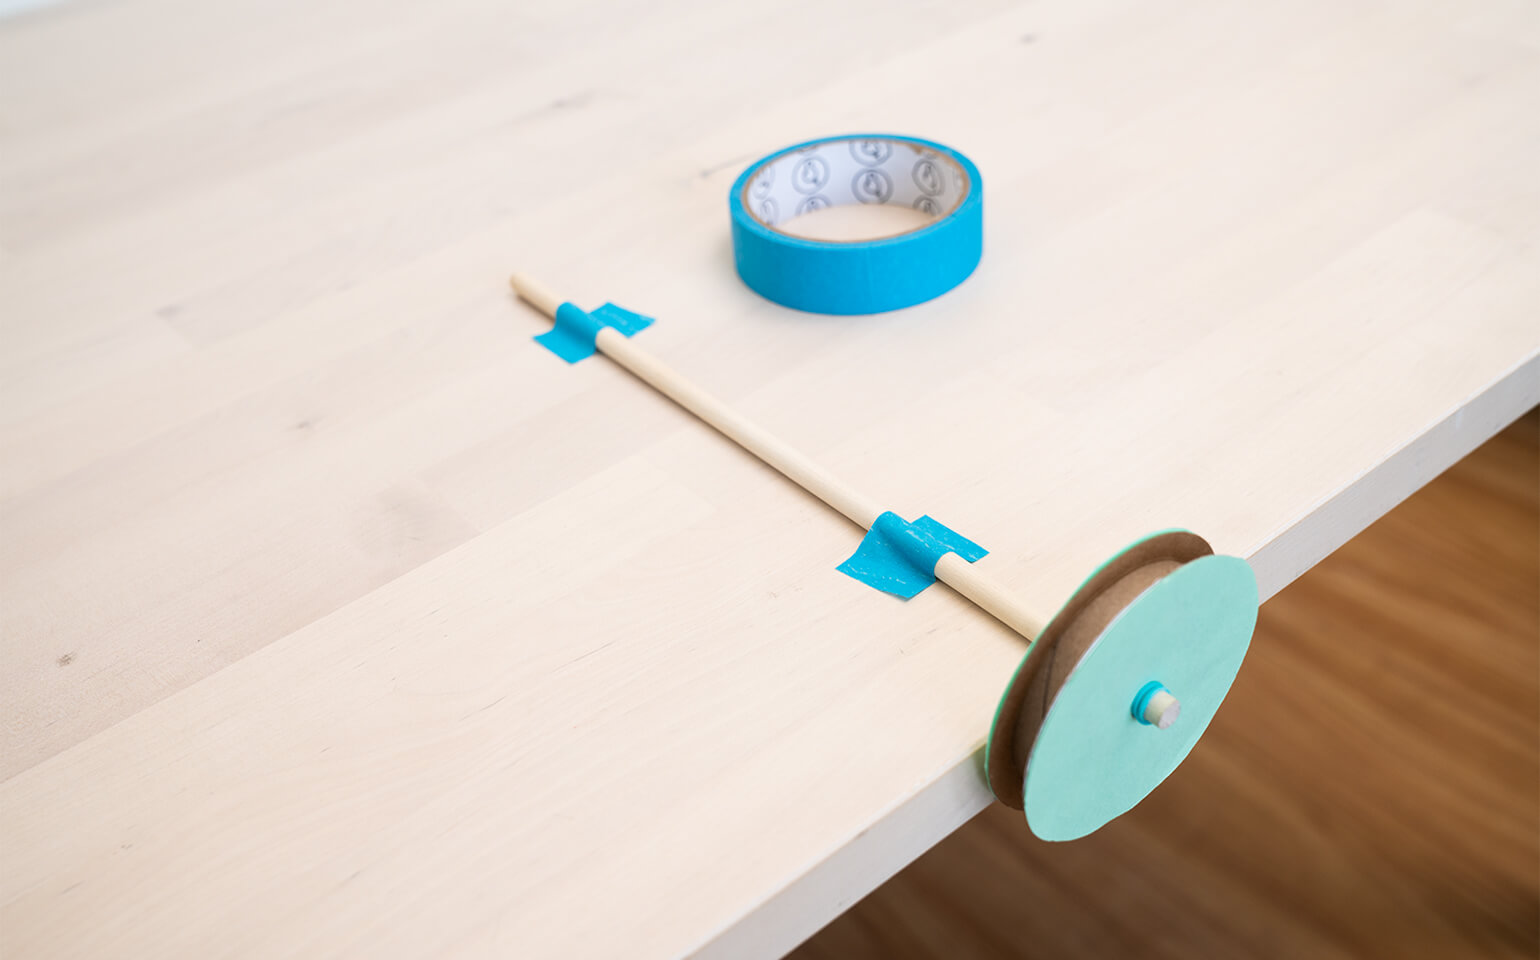 Playing-With-Pulleys-Body-2-2x